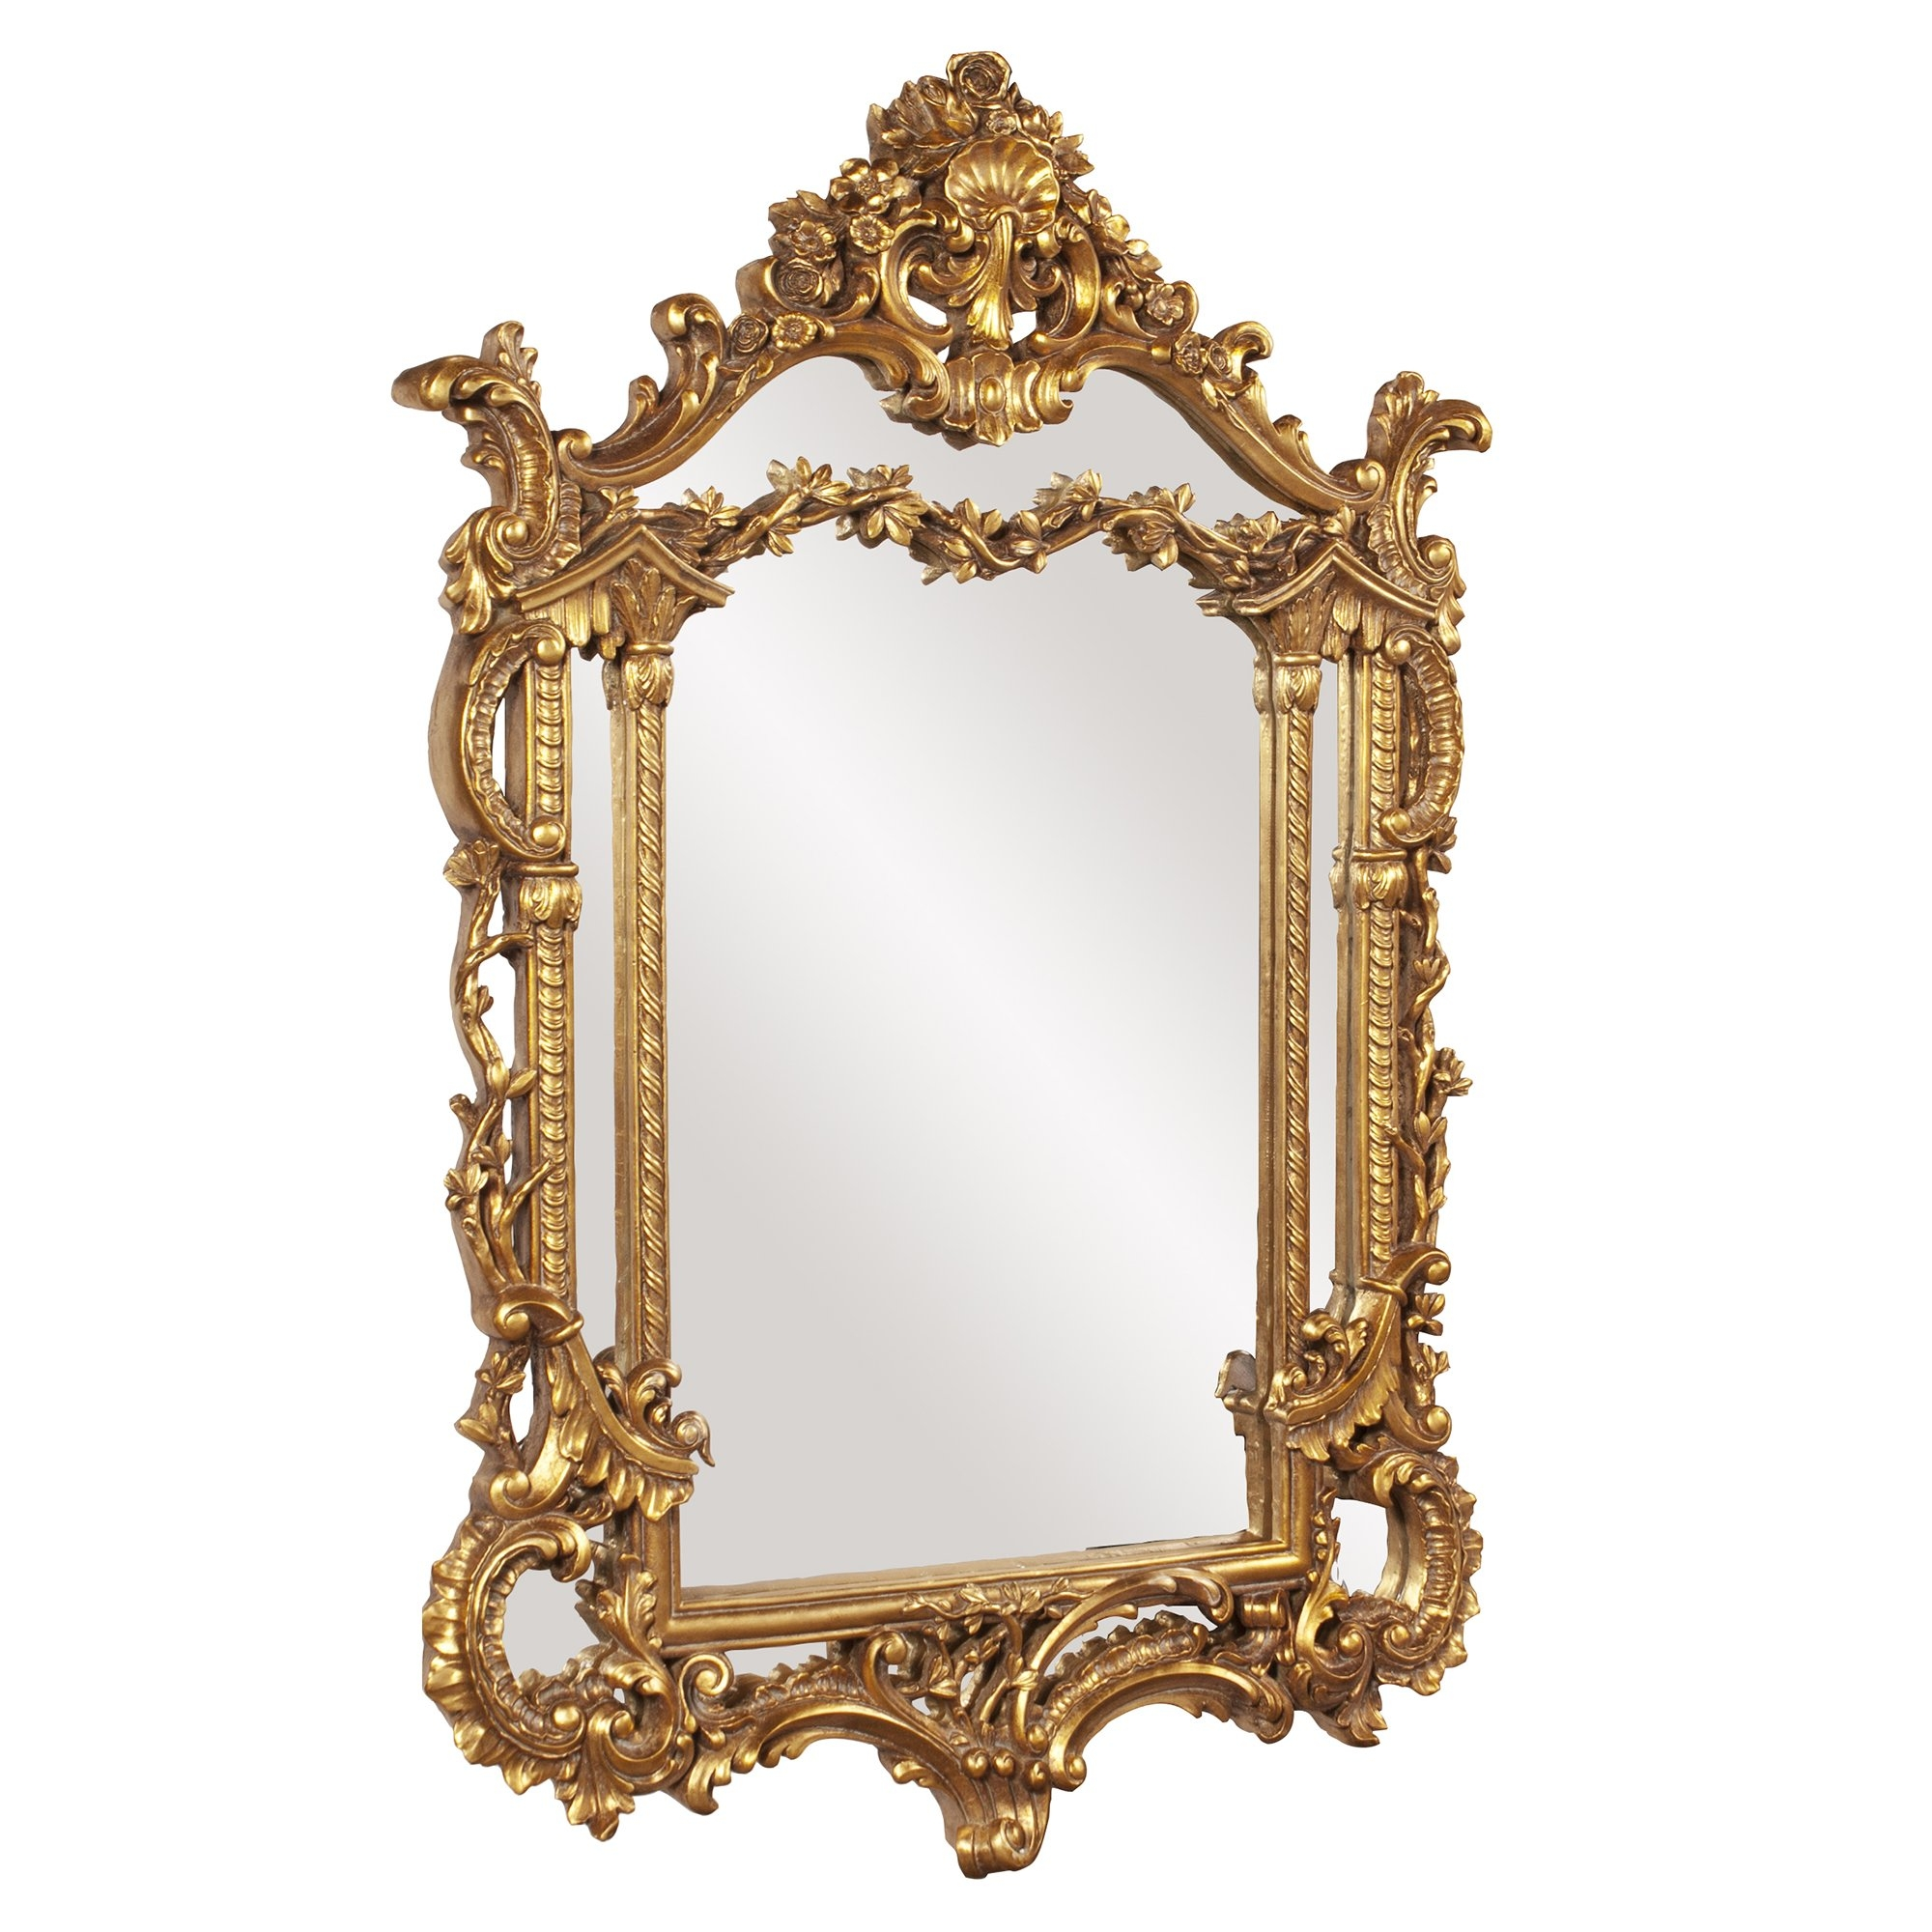 Astoria Grand Antique Gold Vertical Baroque Mirror Reviews Wayfair With Regard To Baroque Gold Mirror (Image 4 of 15)